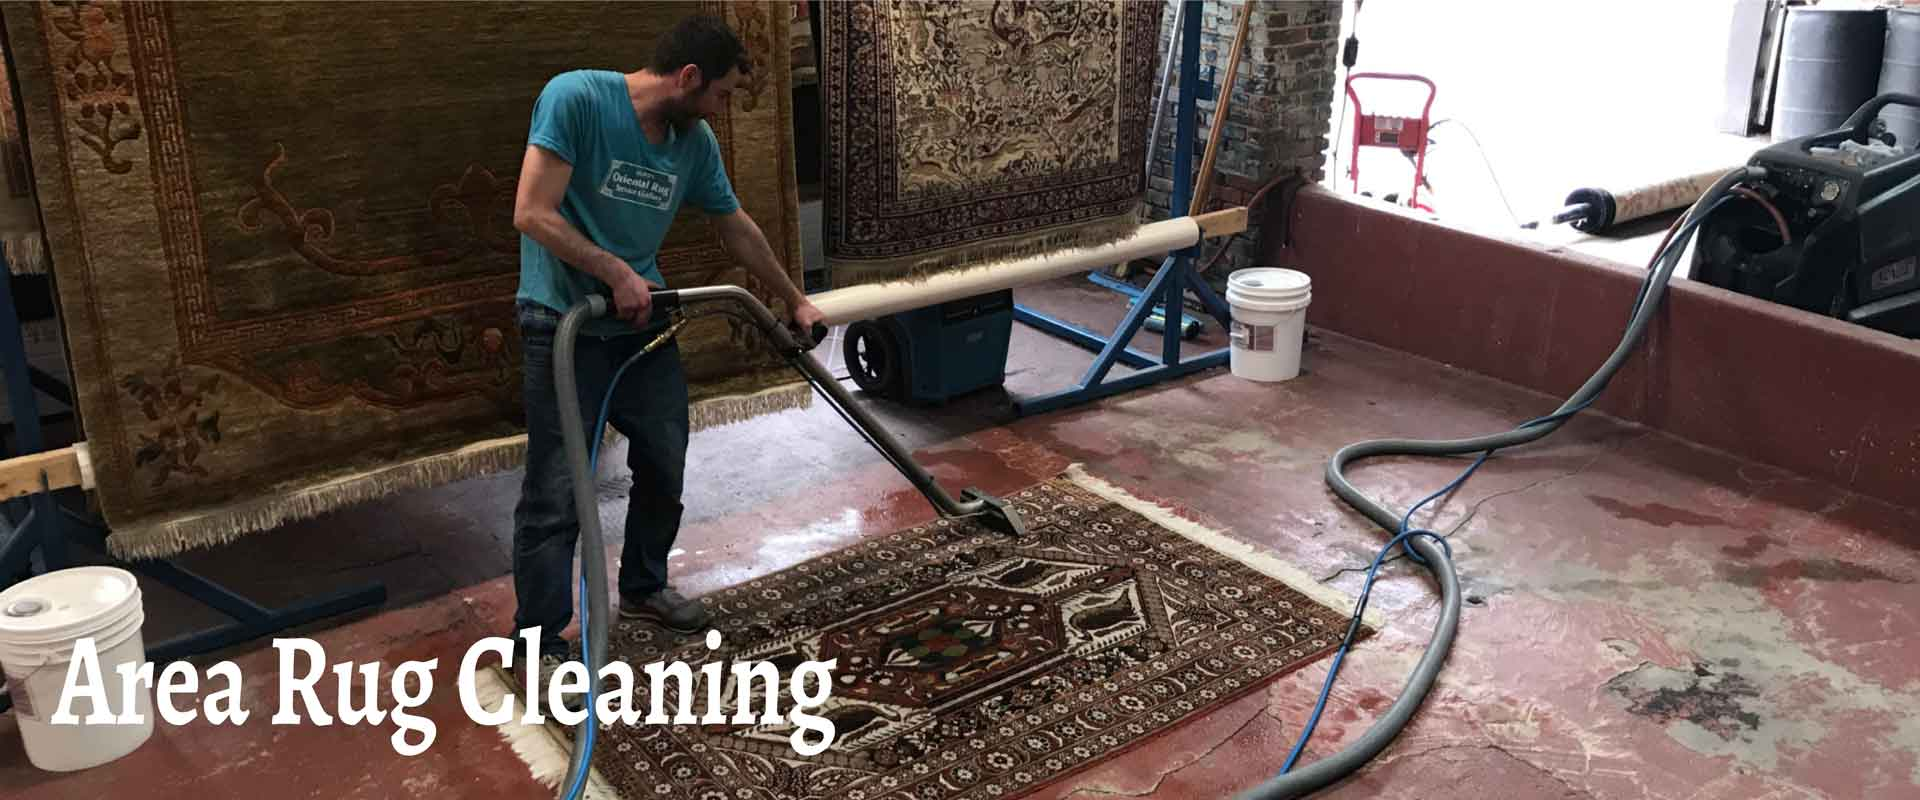 cleaning-header-NEW-4-20-19—2-large